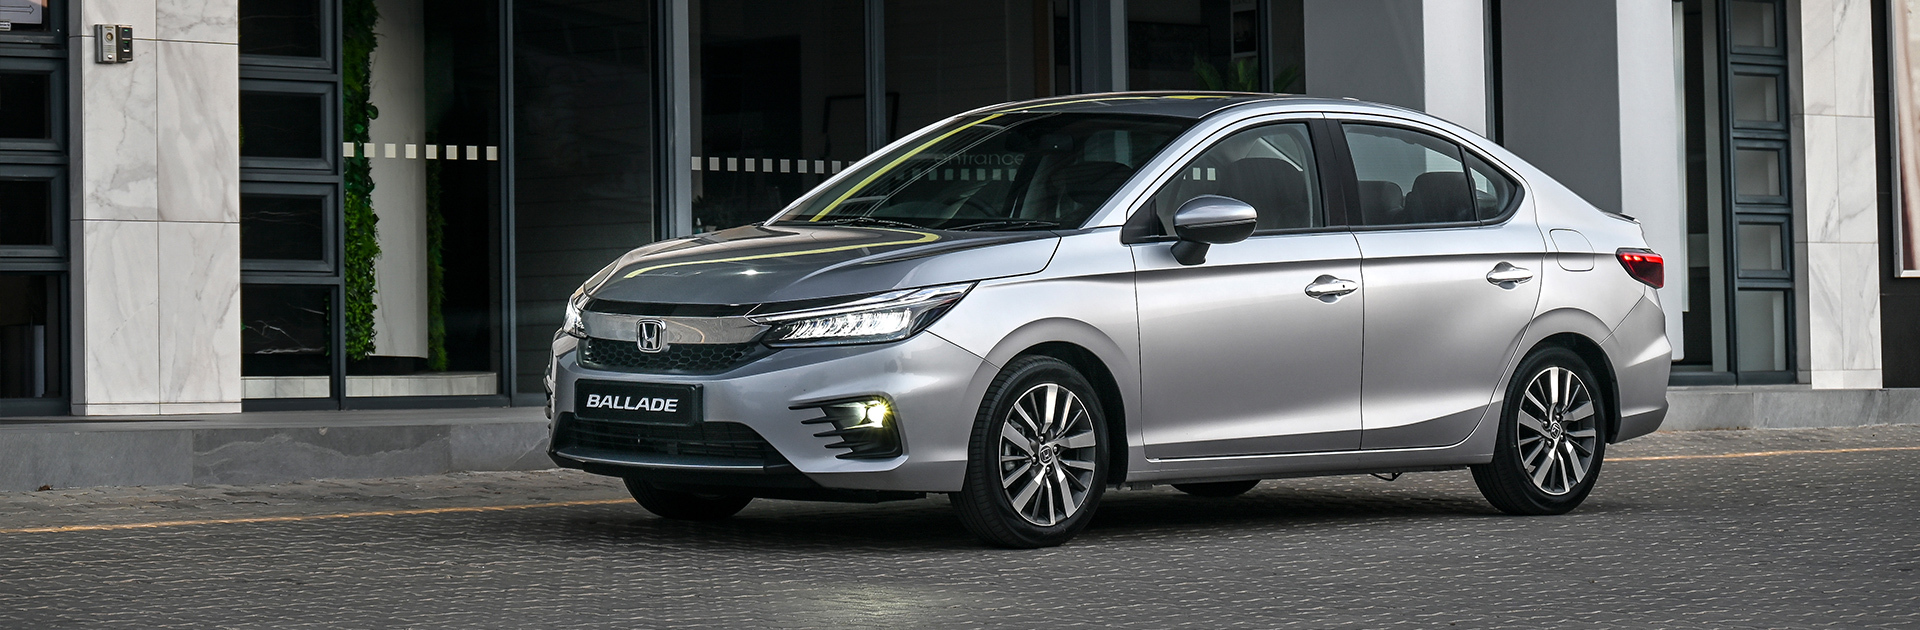 Honda Helderberg New Cars